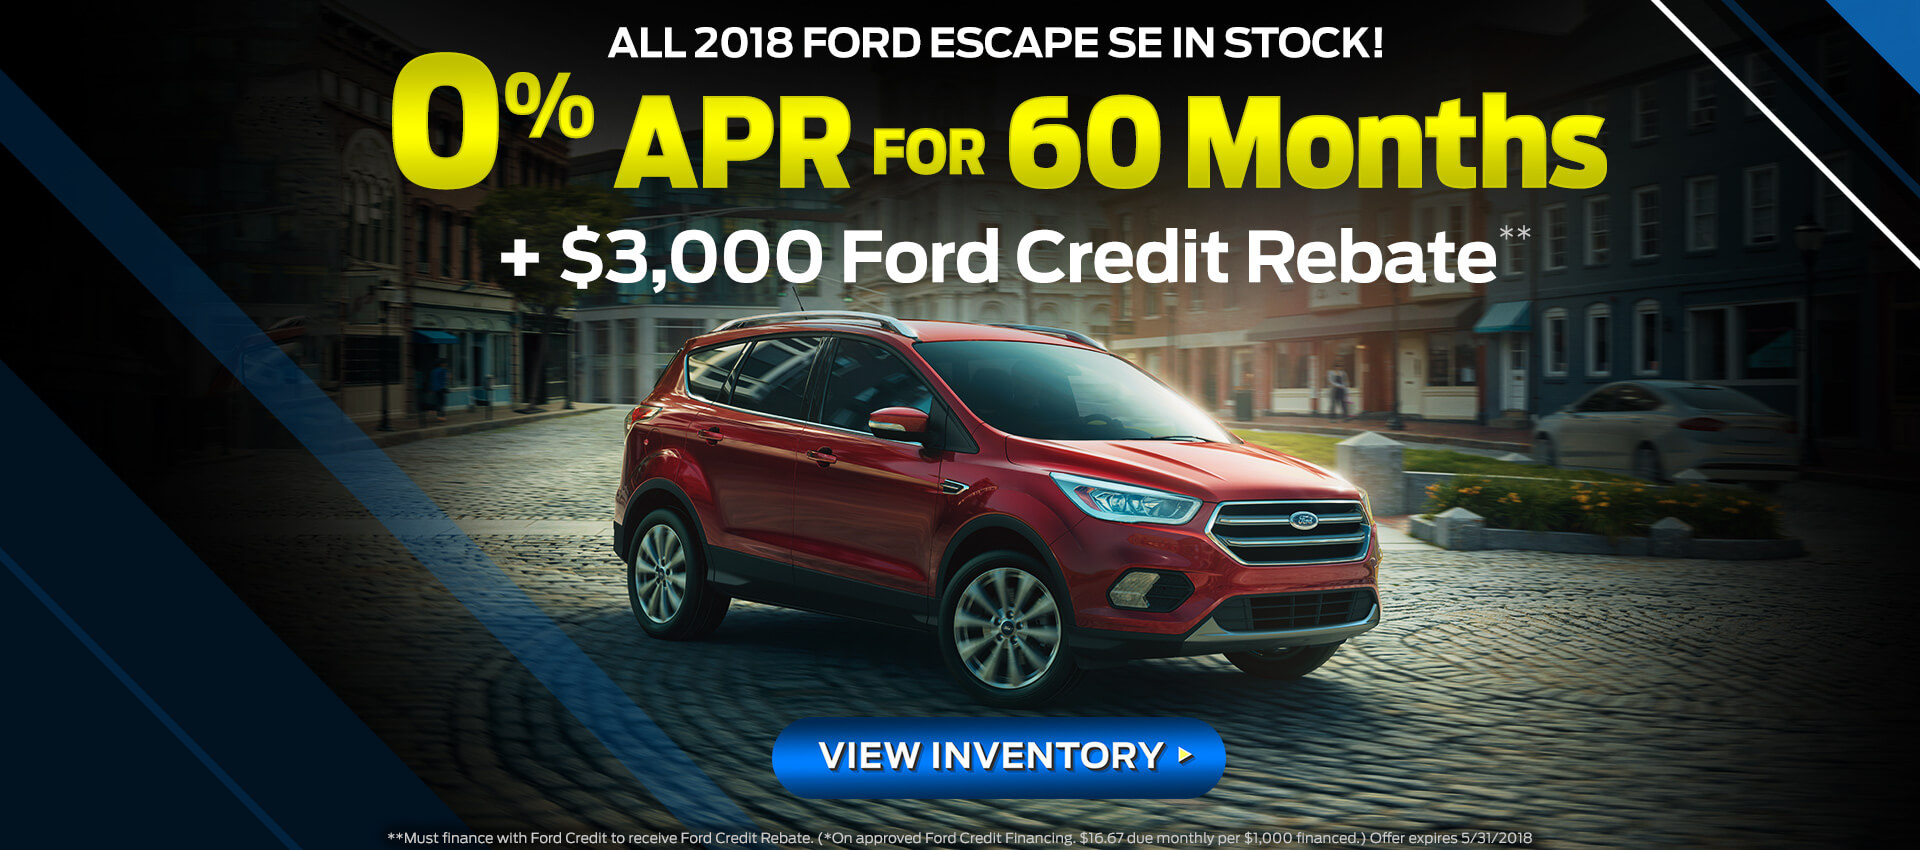 2018 Escape 0% APR